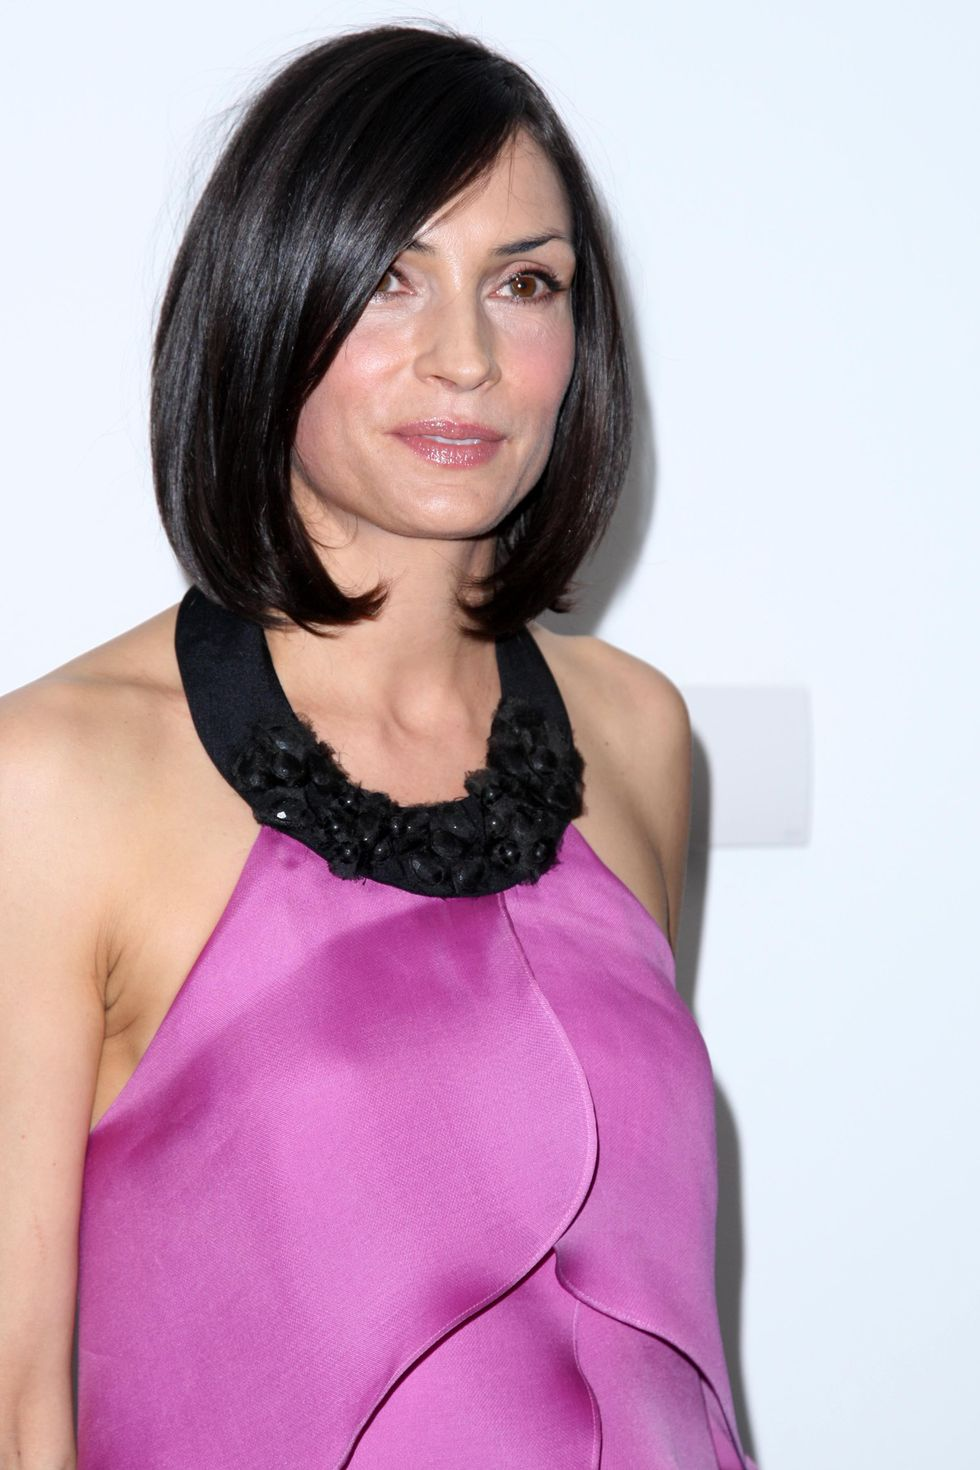 famke-janssen-turn-the-river-premiere-in-new-york-01